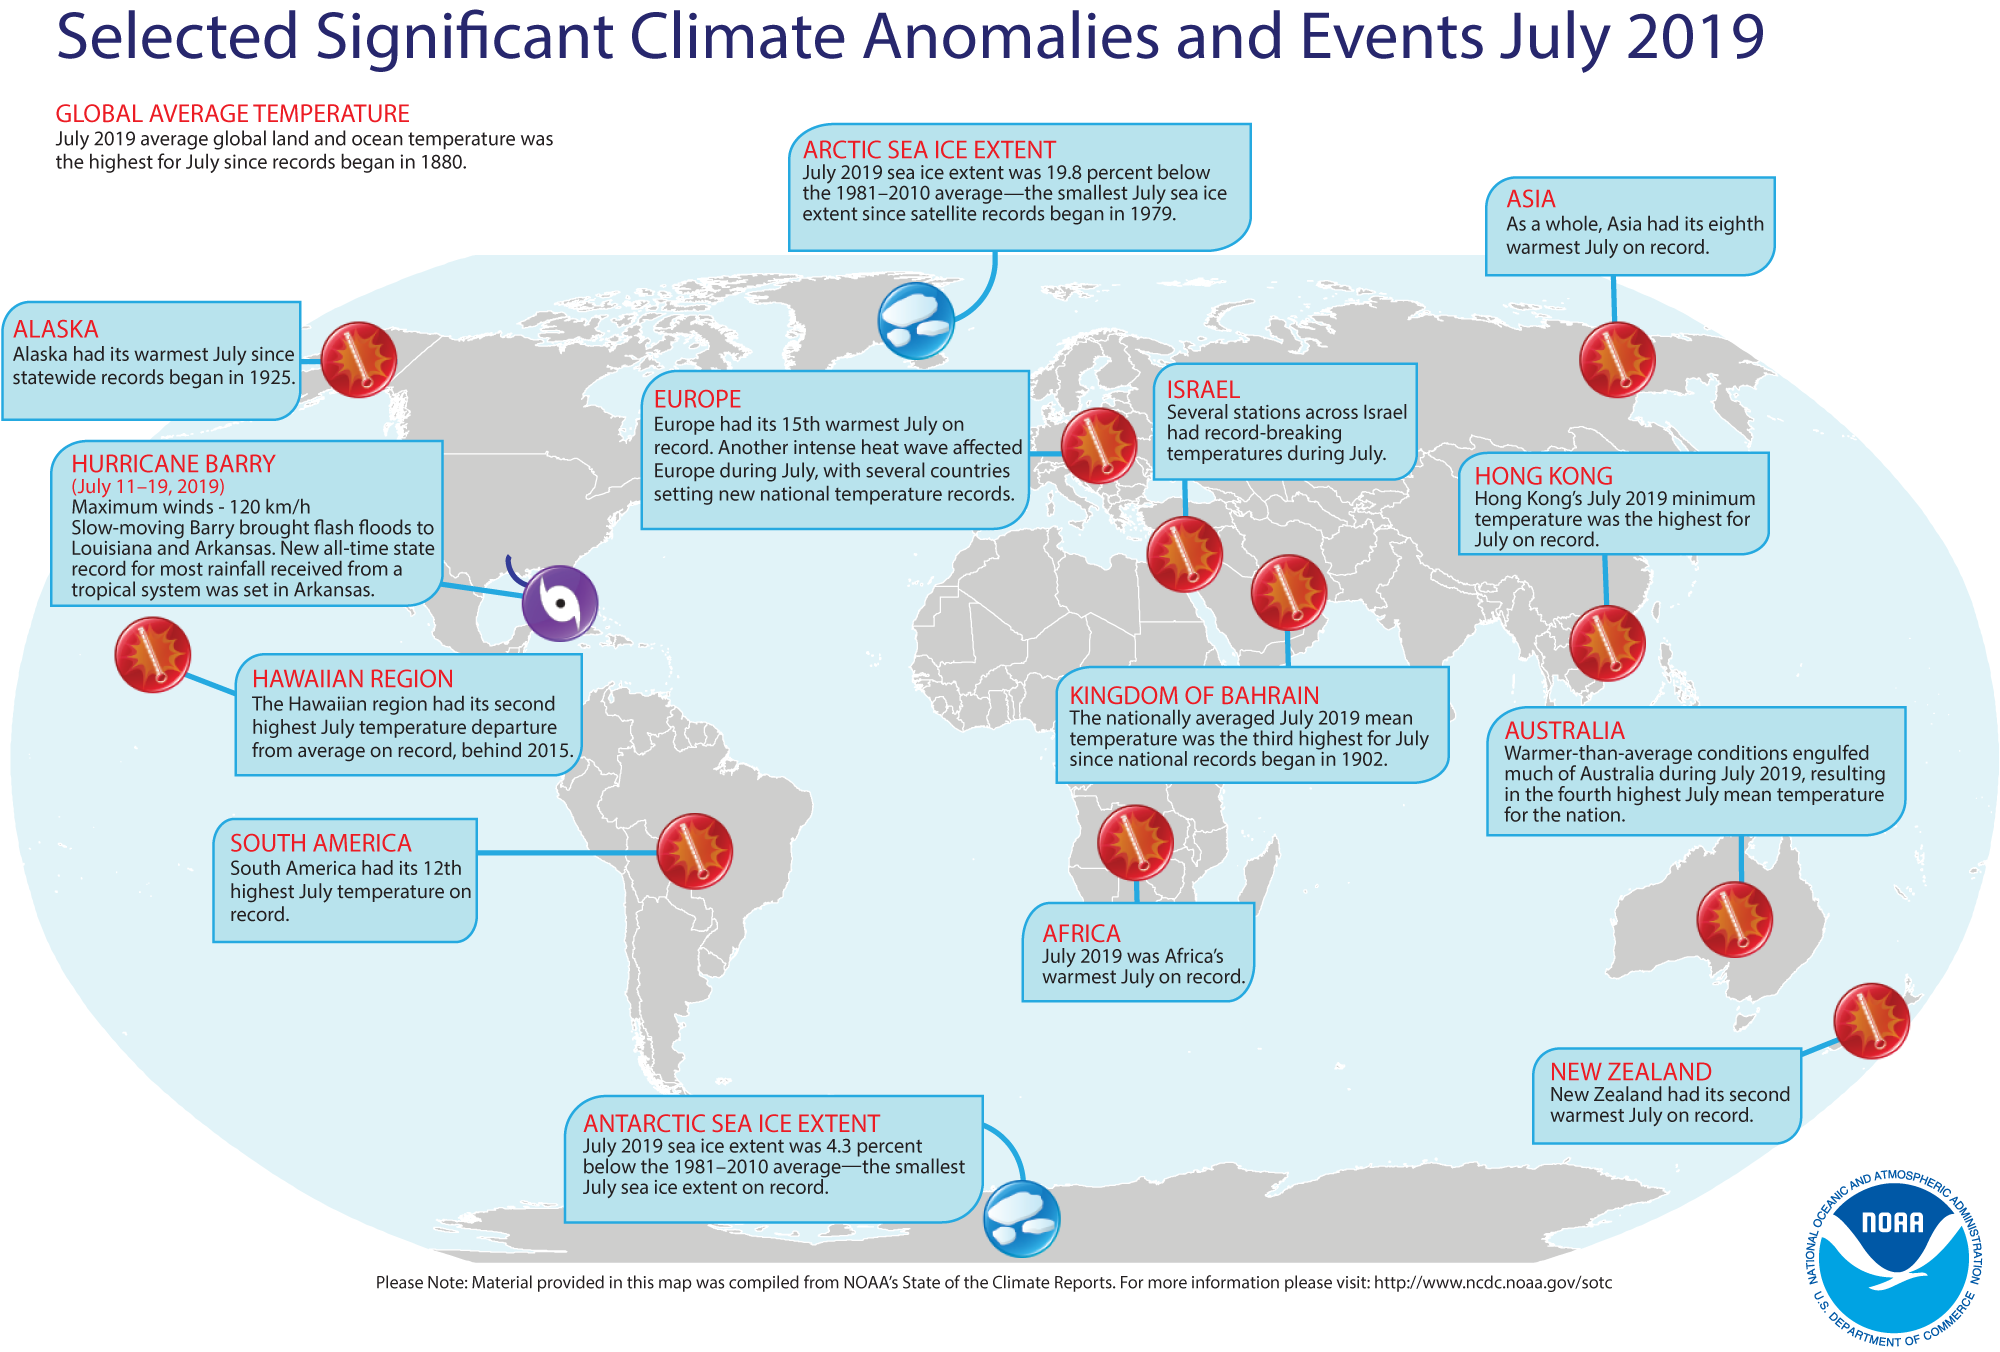 Assessing the Global Climate in July 2019